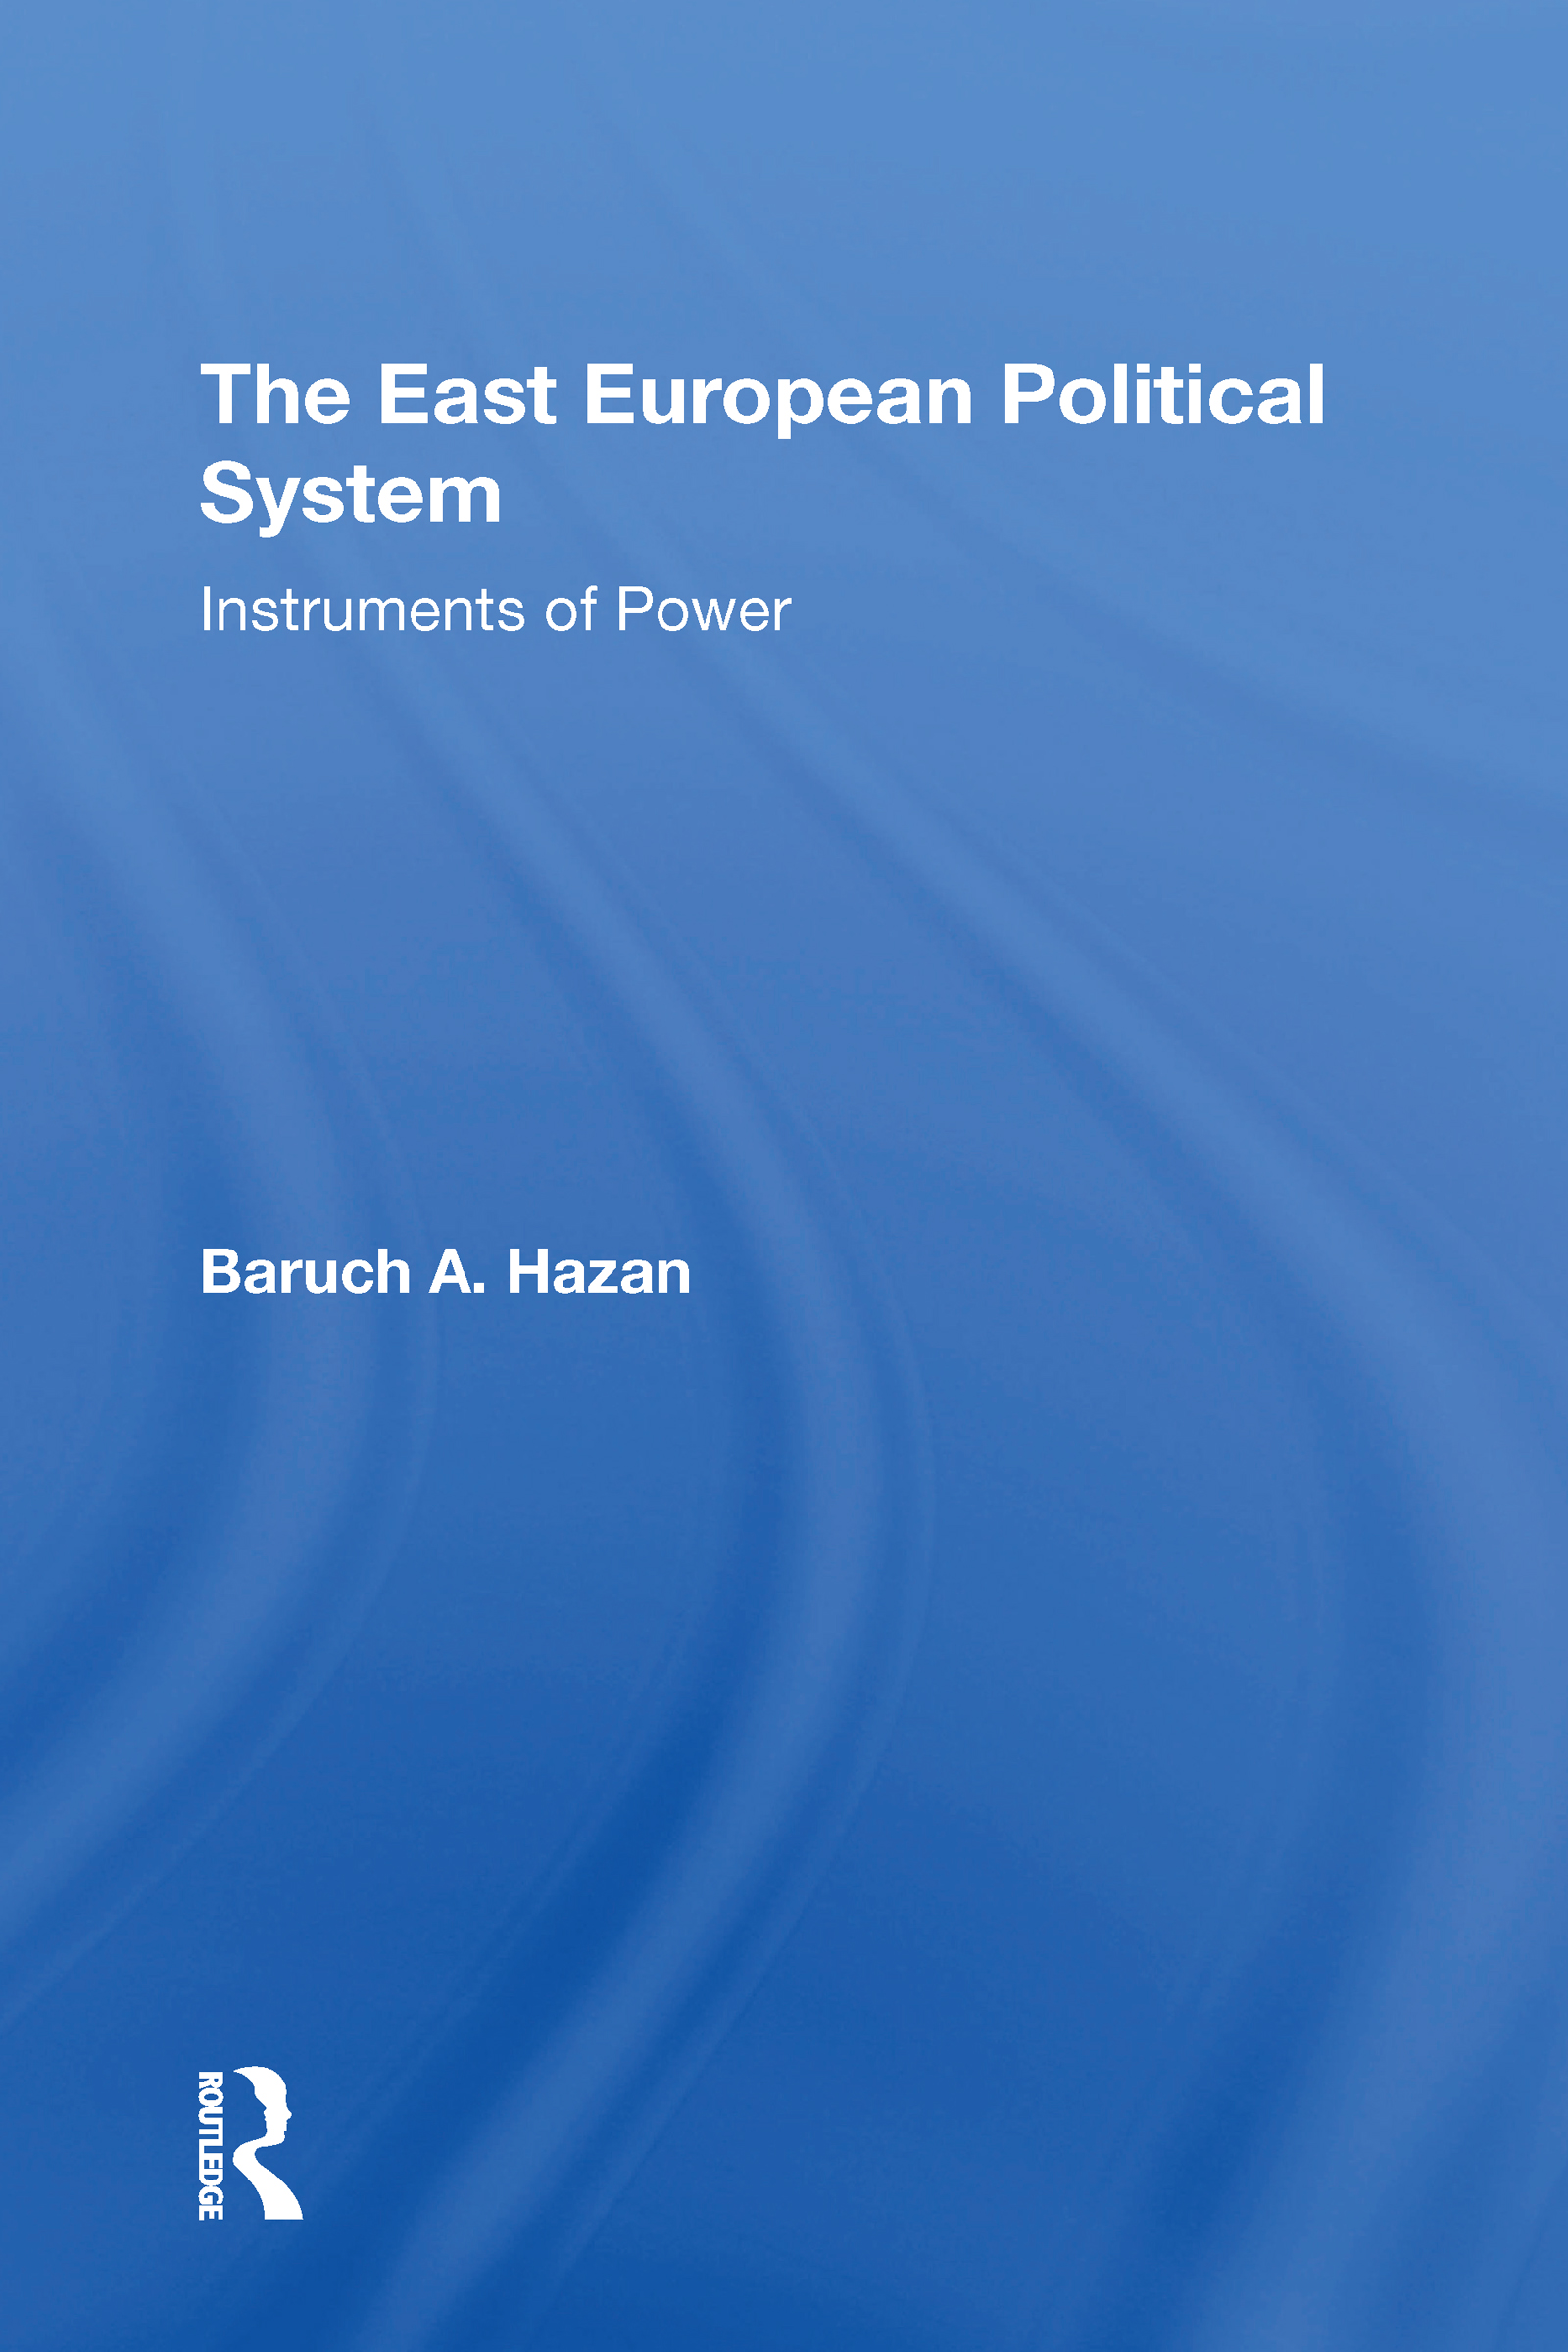 The East European Political System